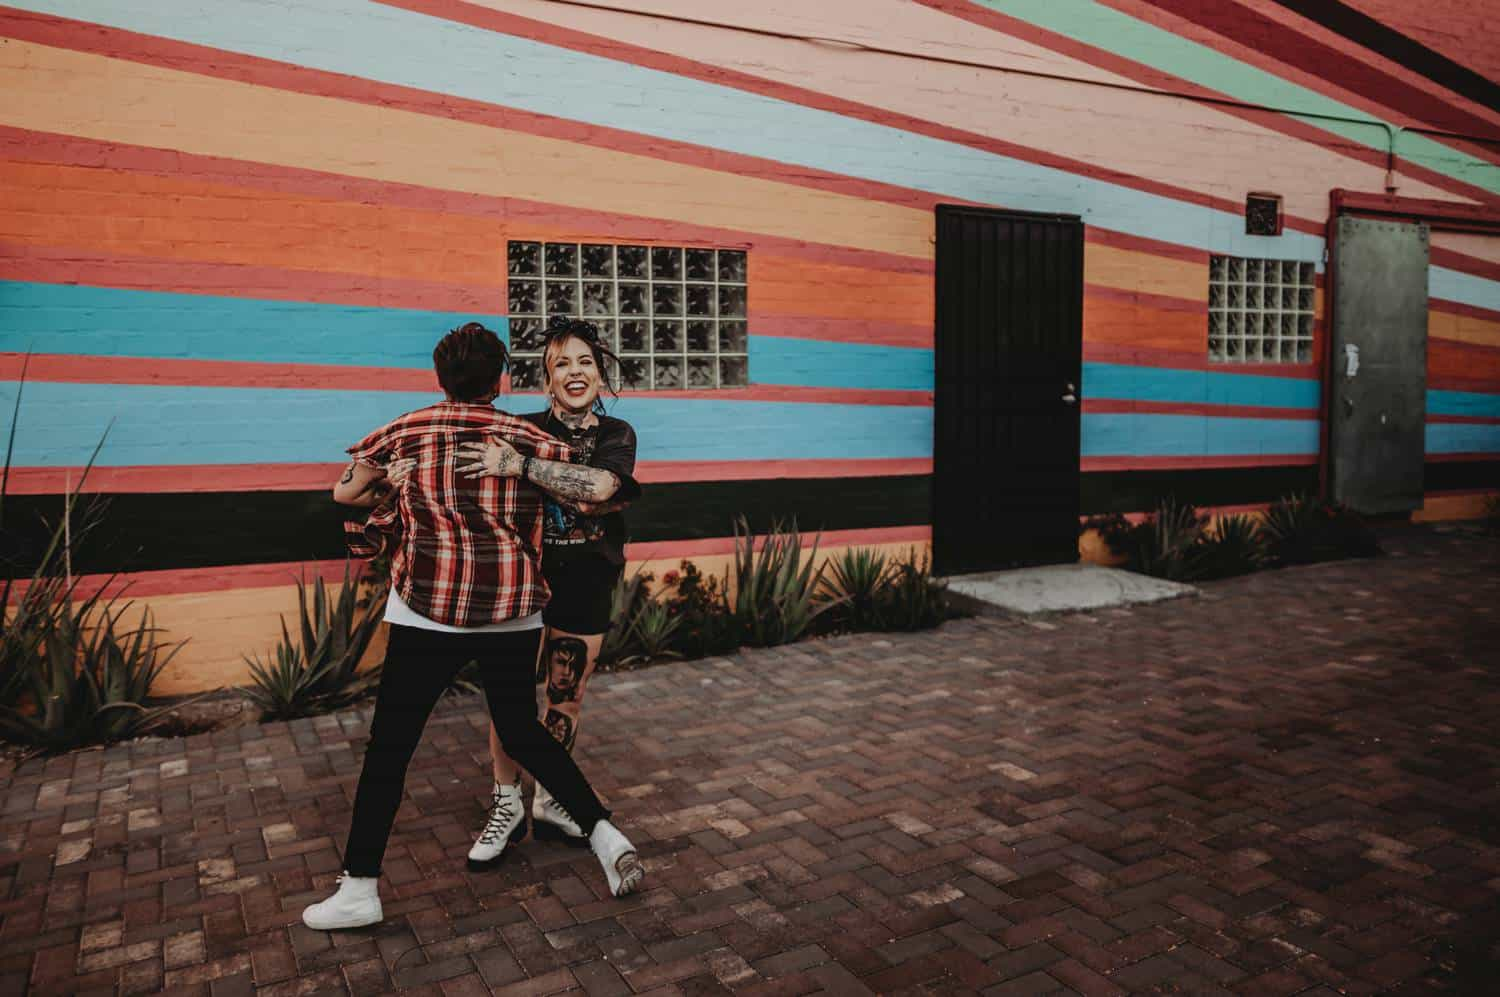 A couple dances joyfully on a stone-paved pathway into a rainbow-striped building.